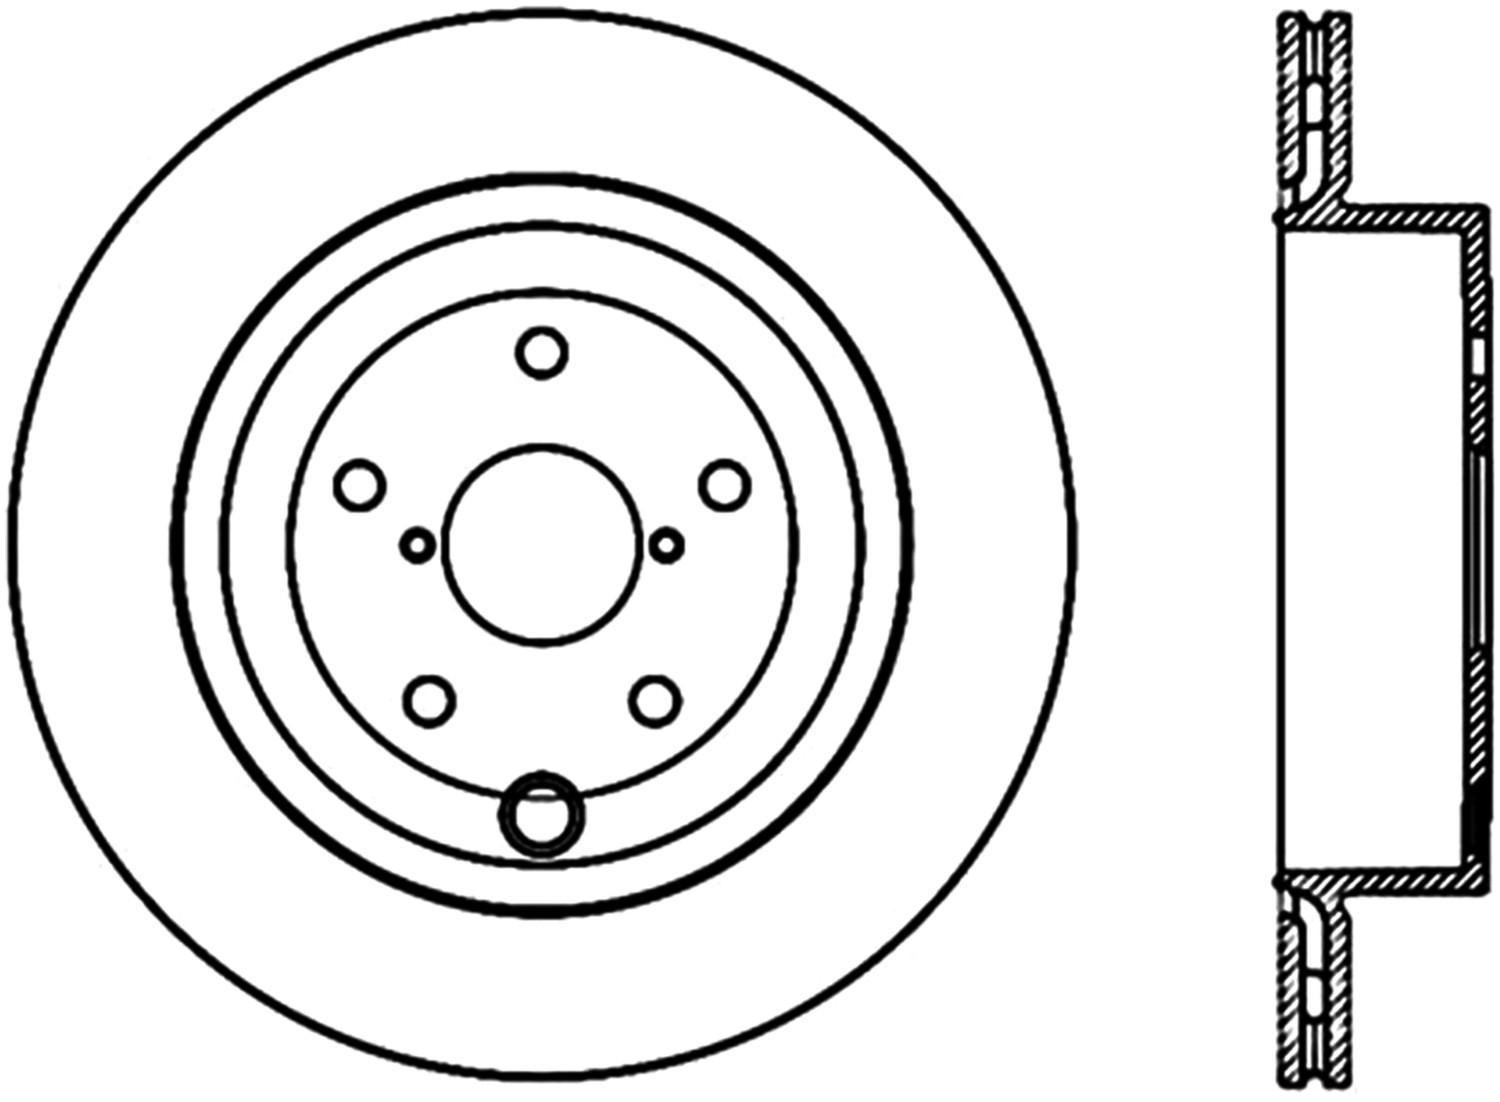 STOPTECH - StopTech High Carbon Alloy Cryo-Treated Disc Brake Rotors (Rear) - SOH 125.47030CRY